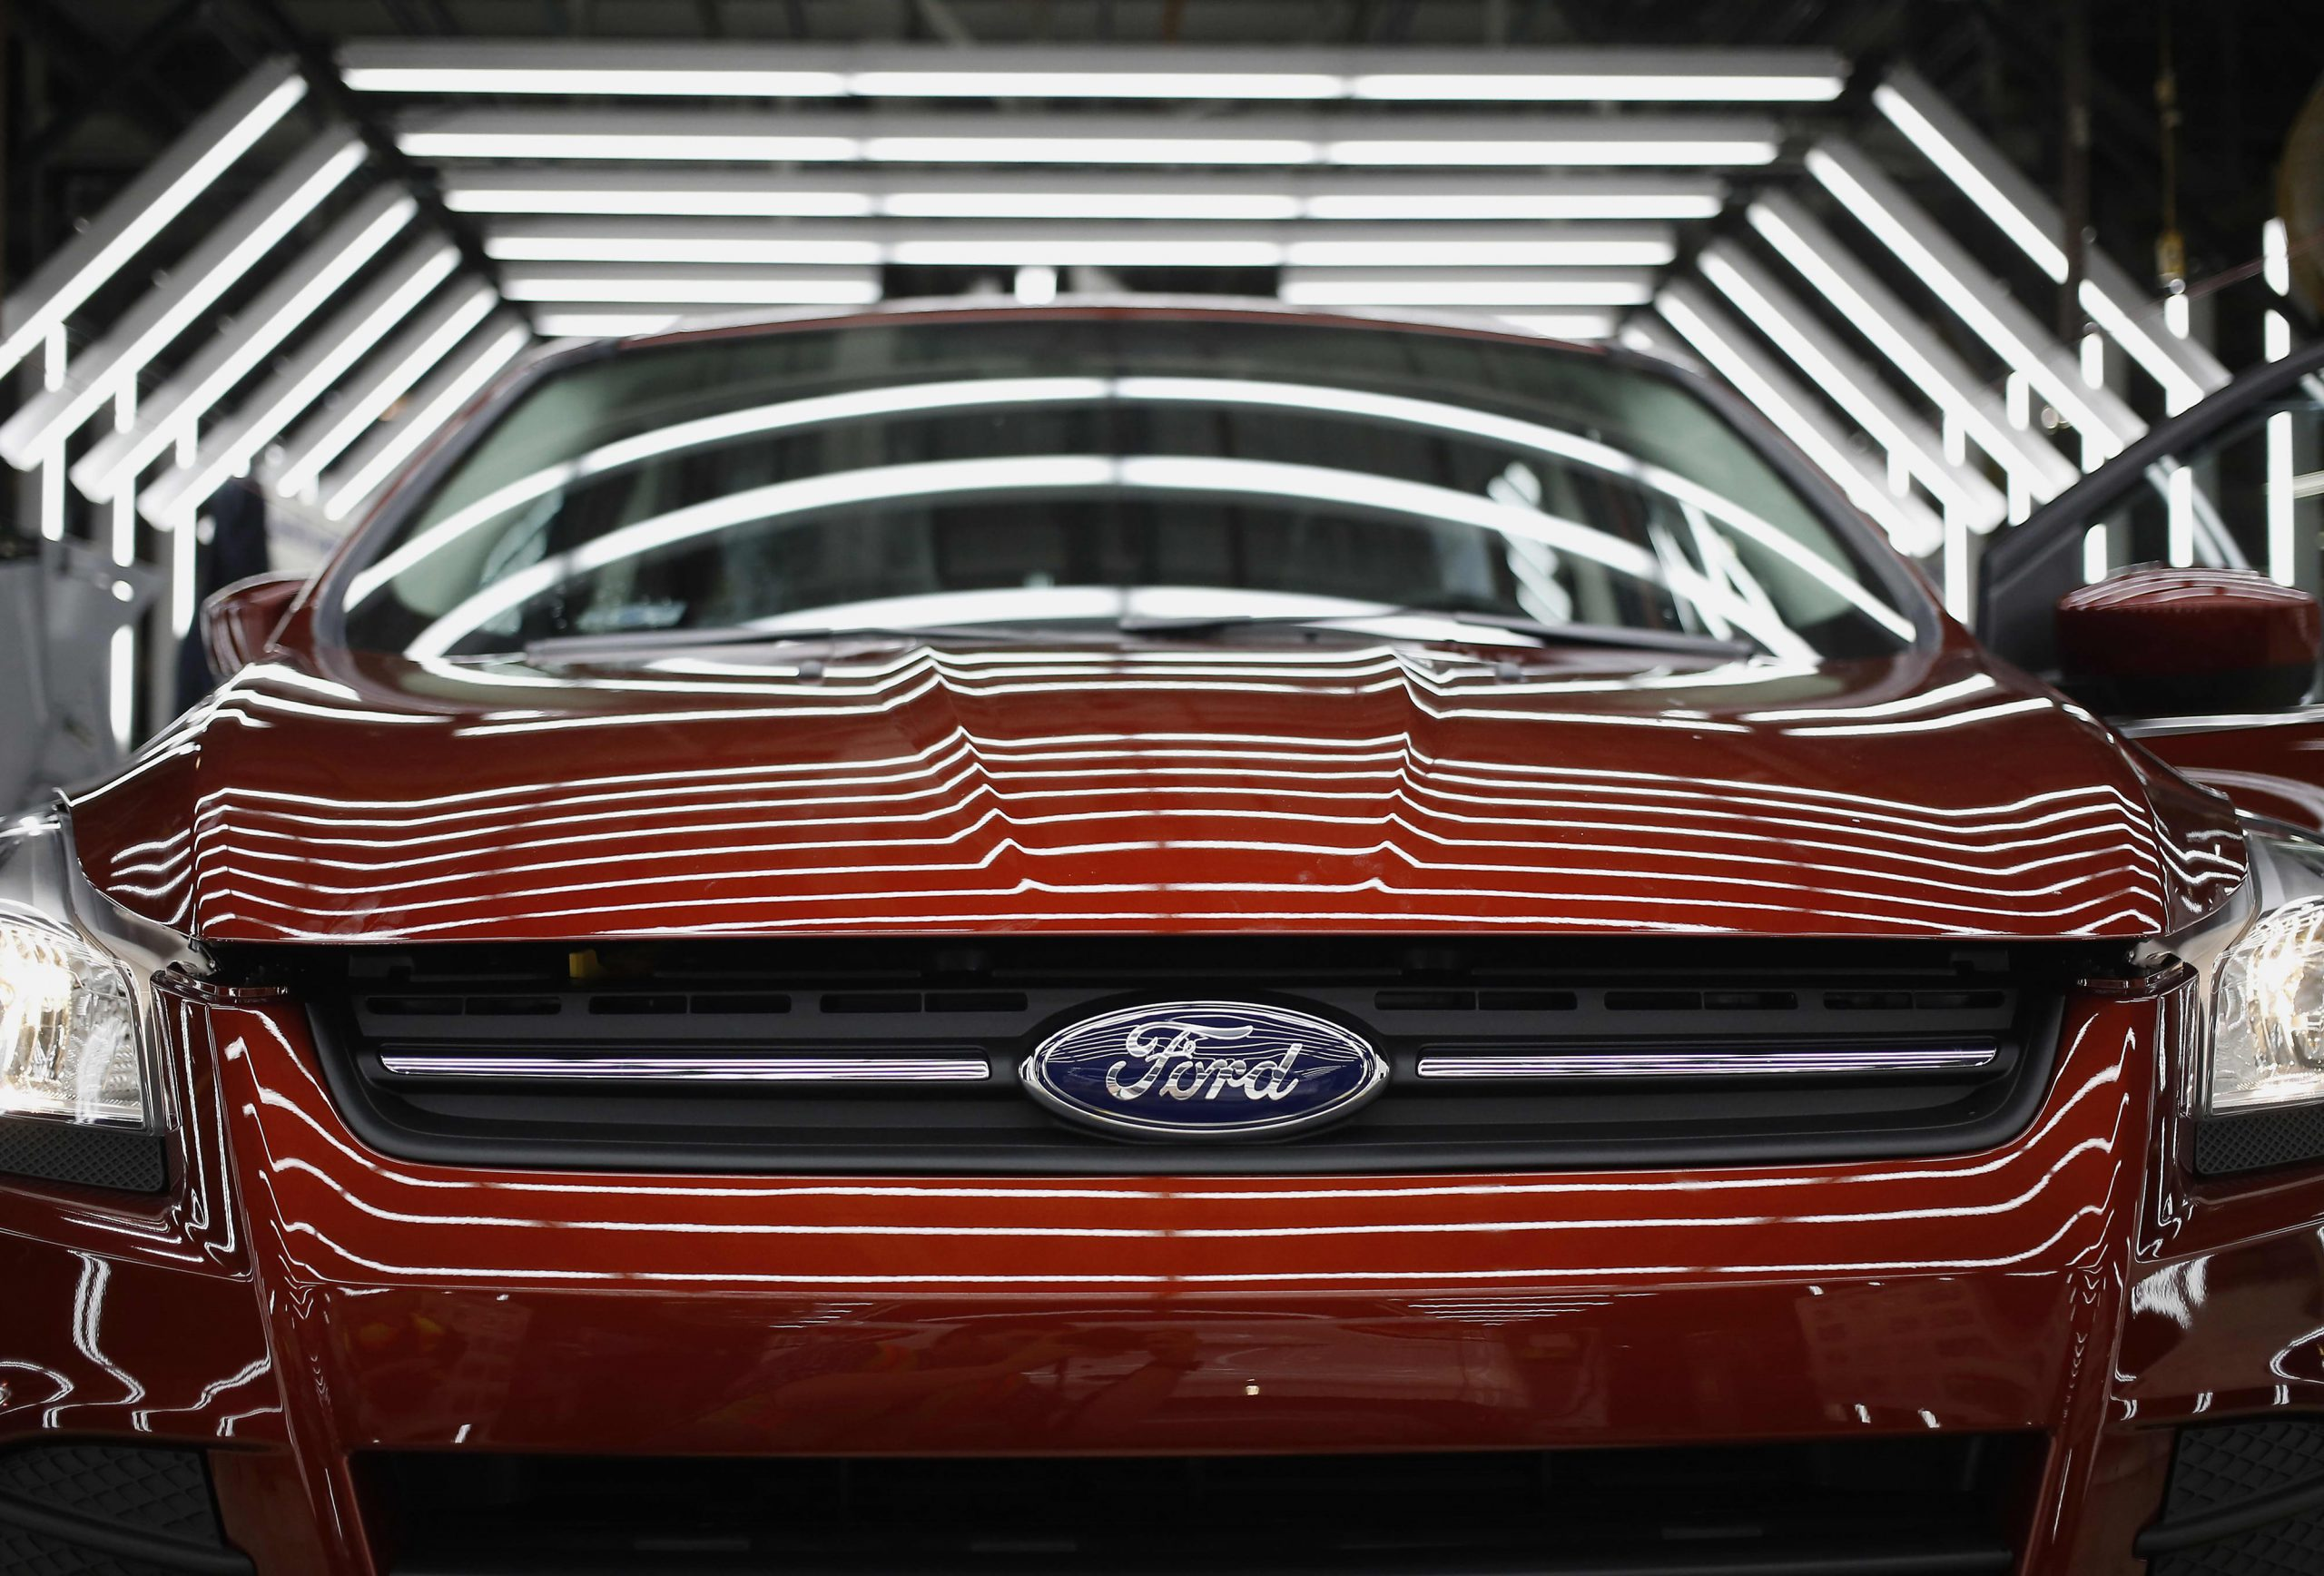 semiconductor-shortage-causes-ford-and-nissan-to-cut-vehicle-production